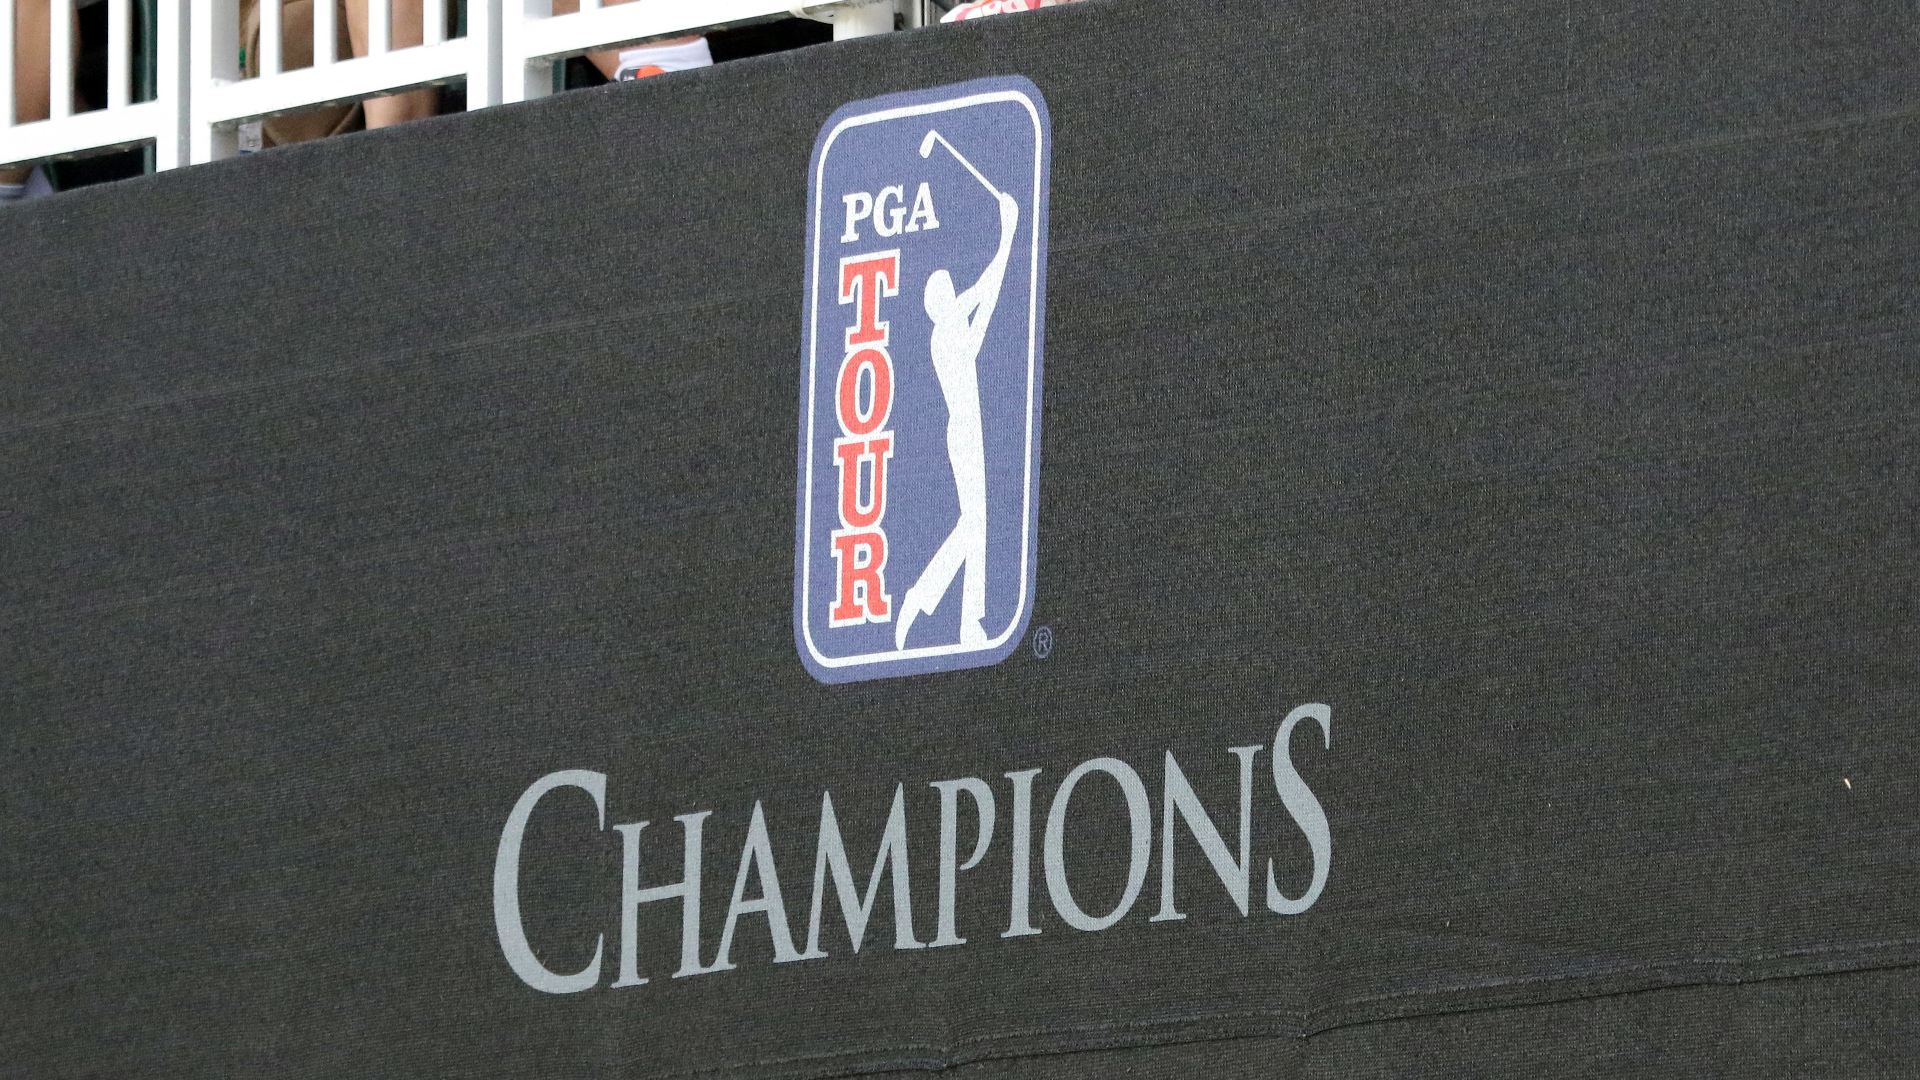 PGA Tour Champions to resume late-July with 13 events in 15 weeks